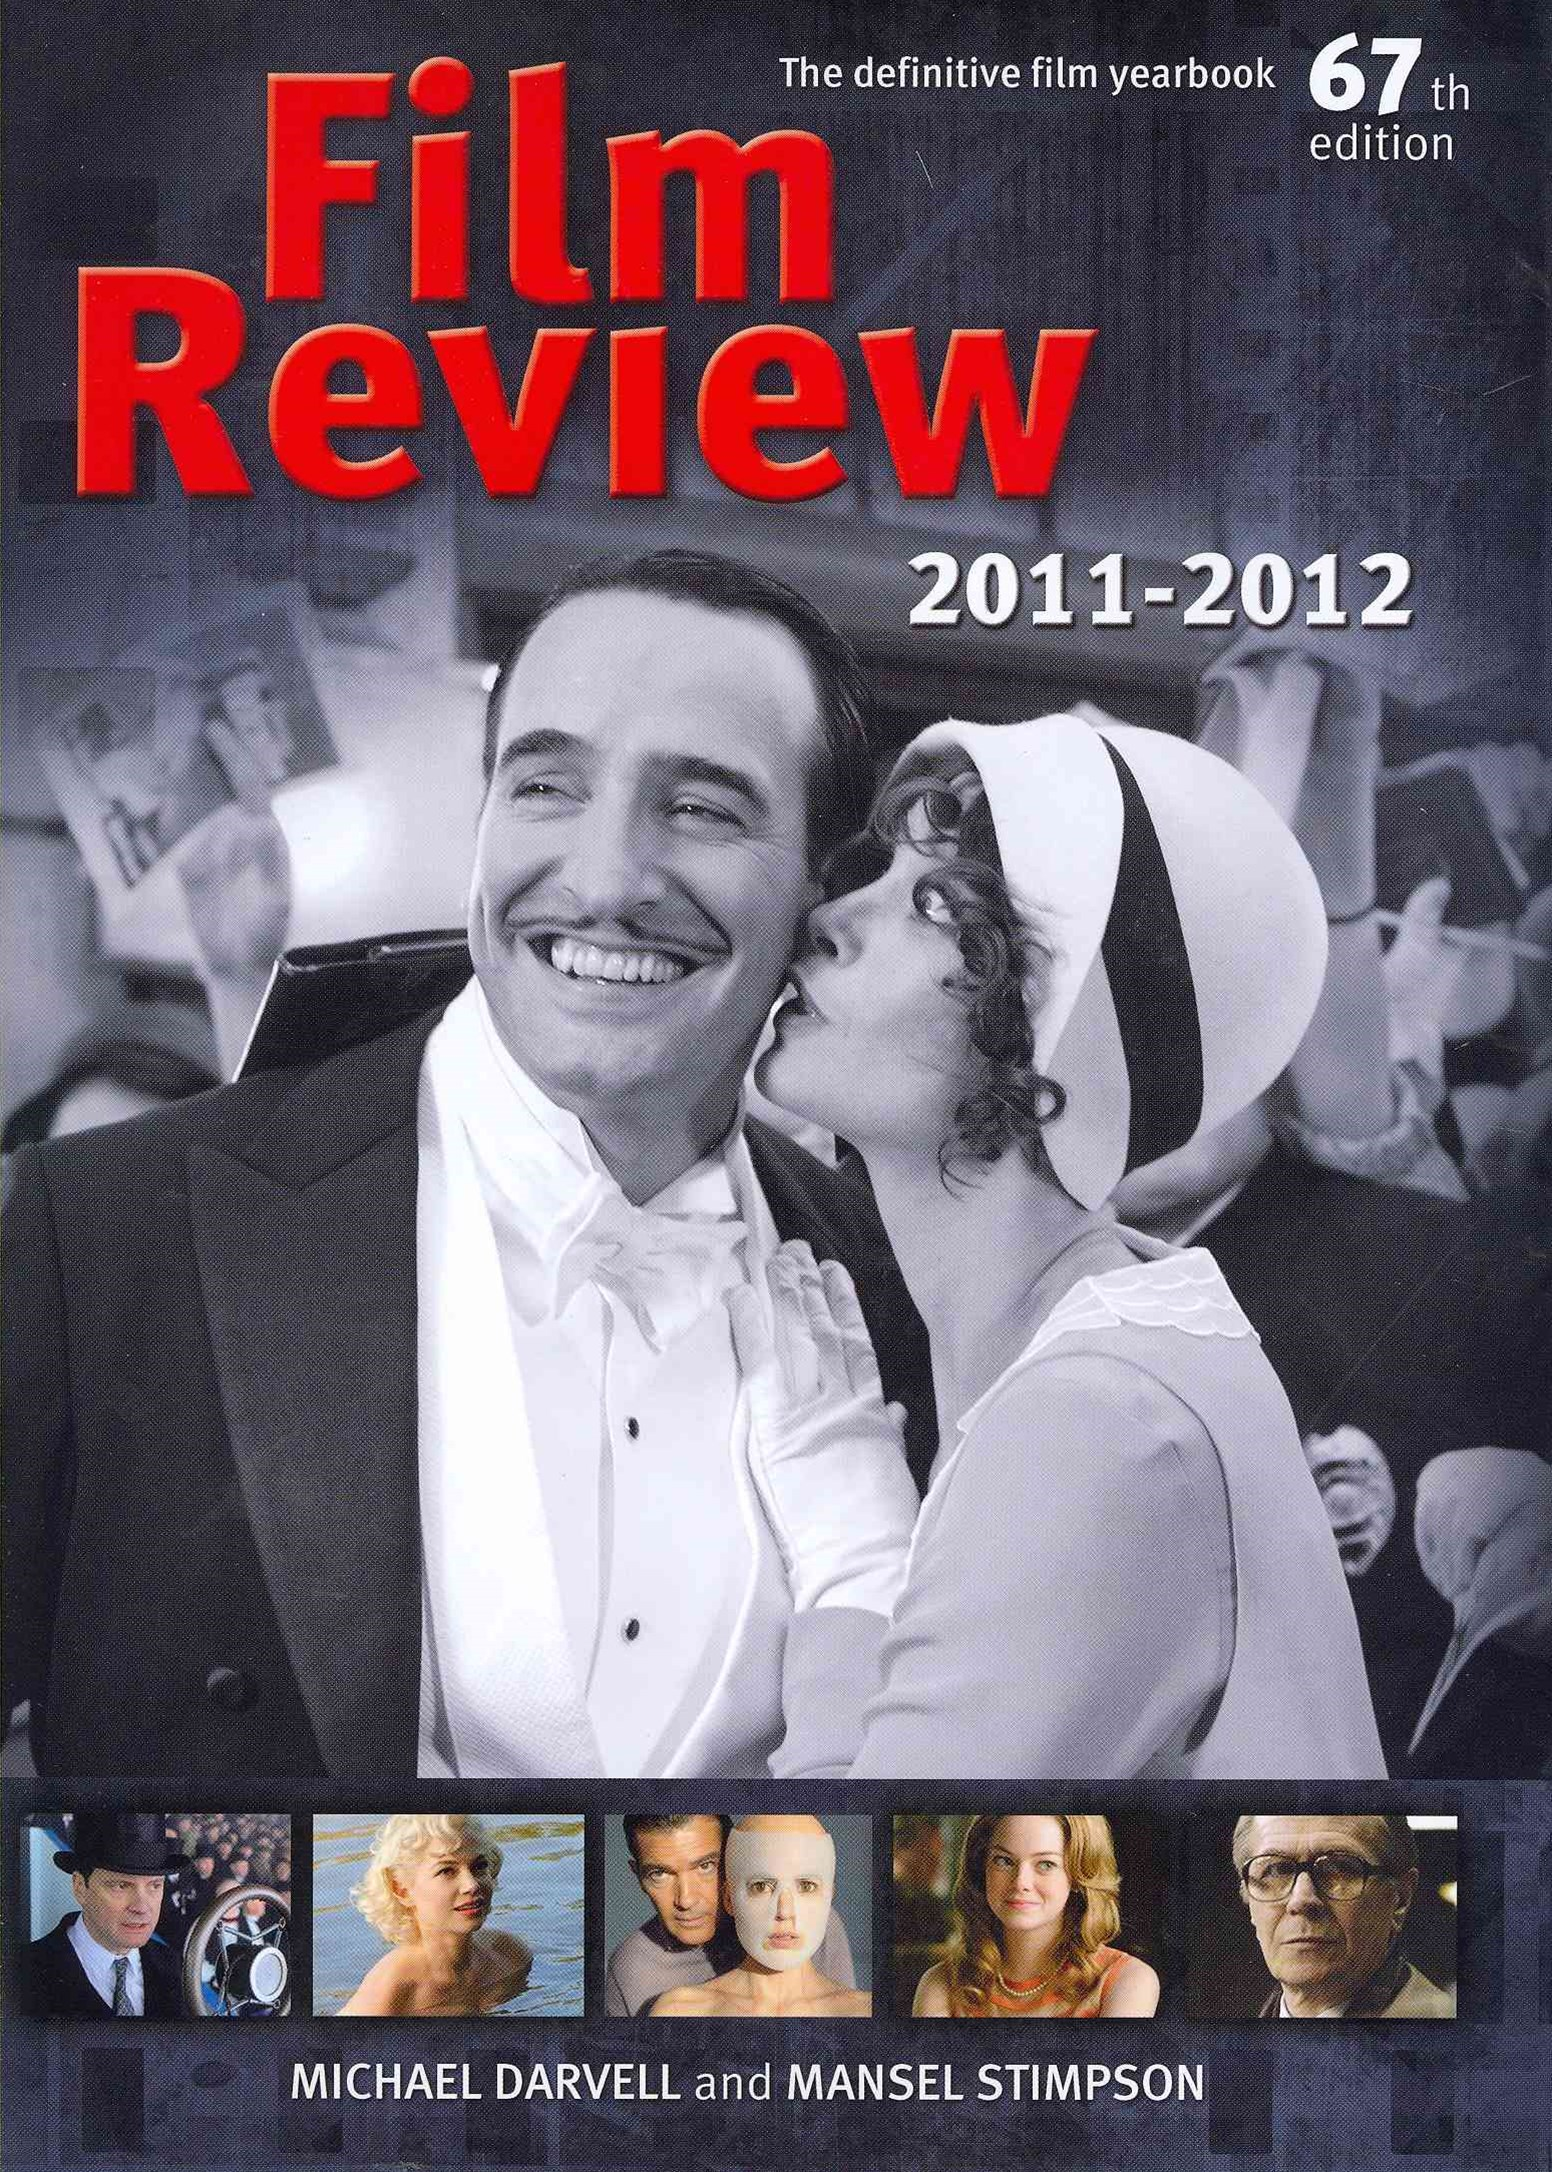 Film Review 2011-2012